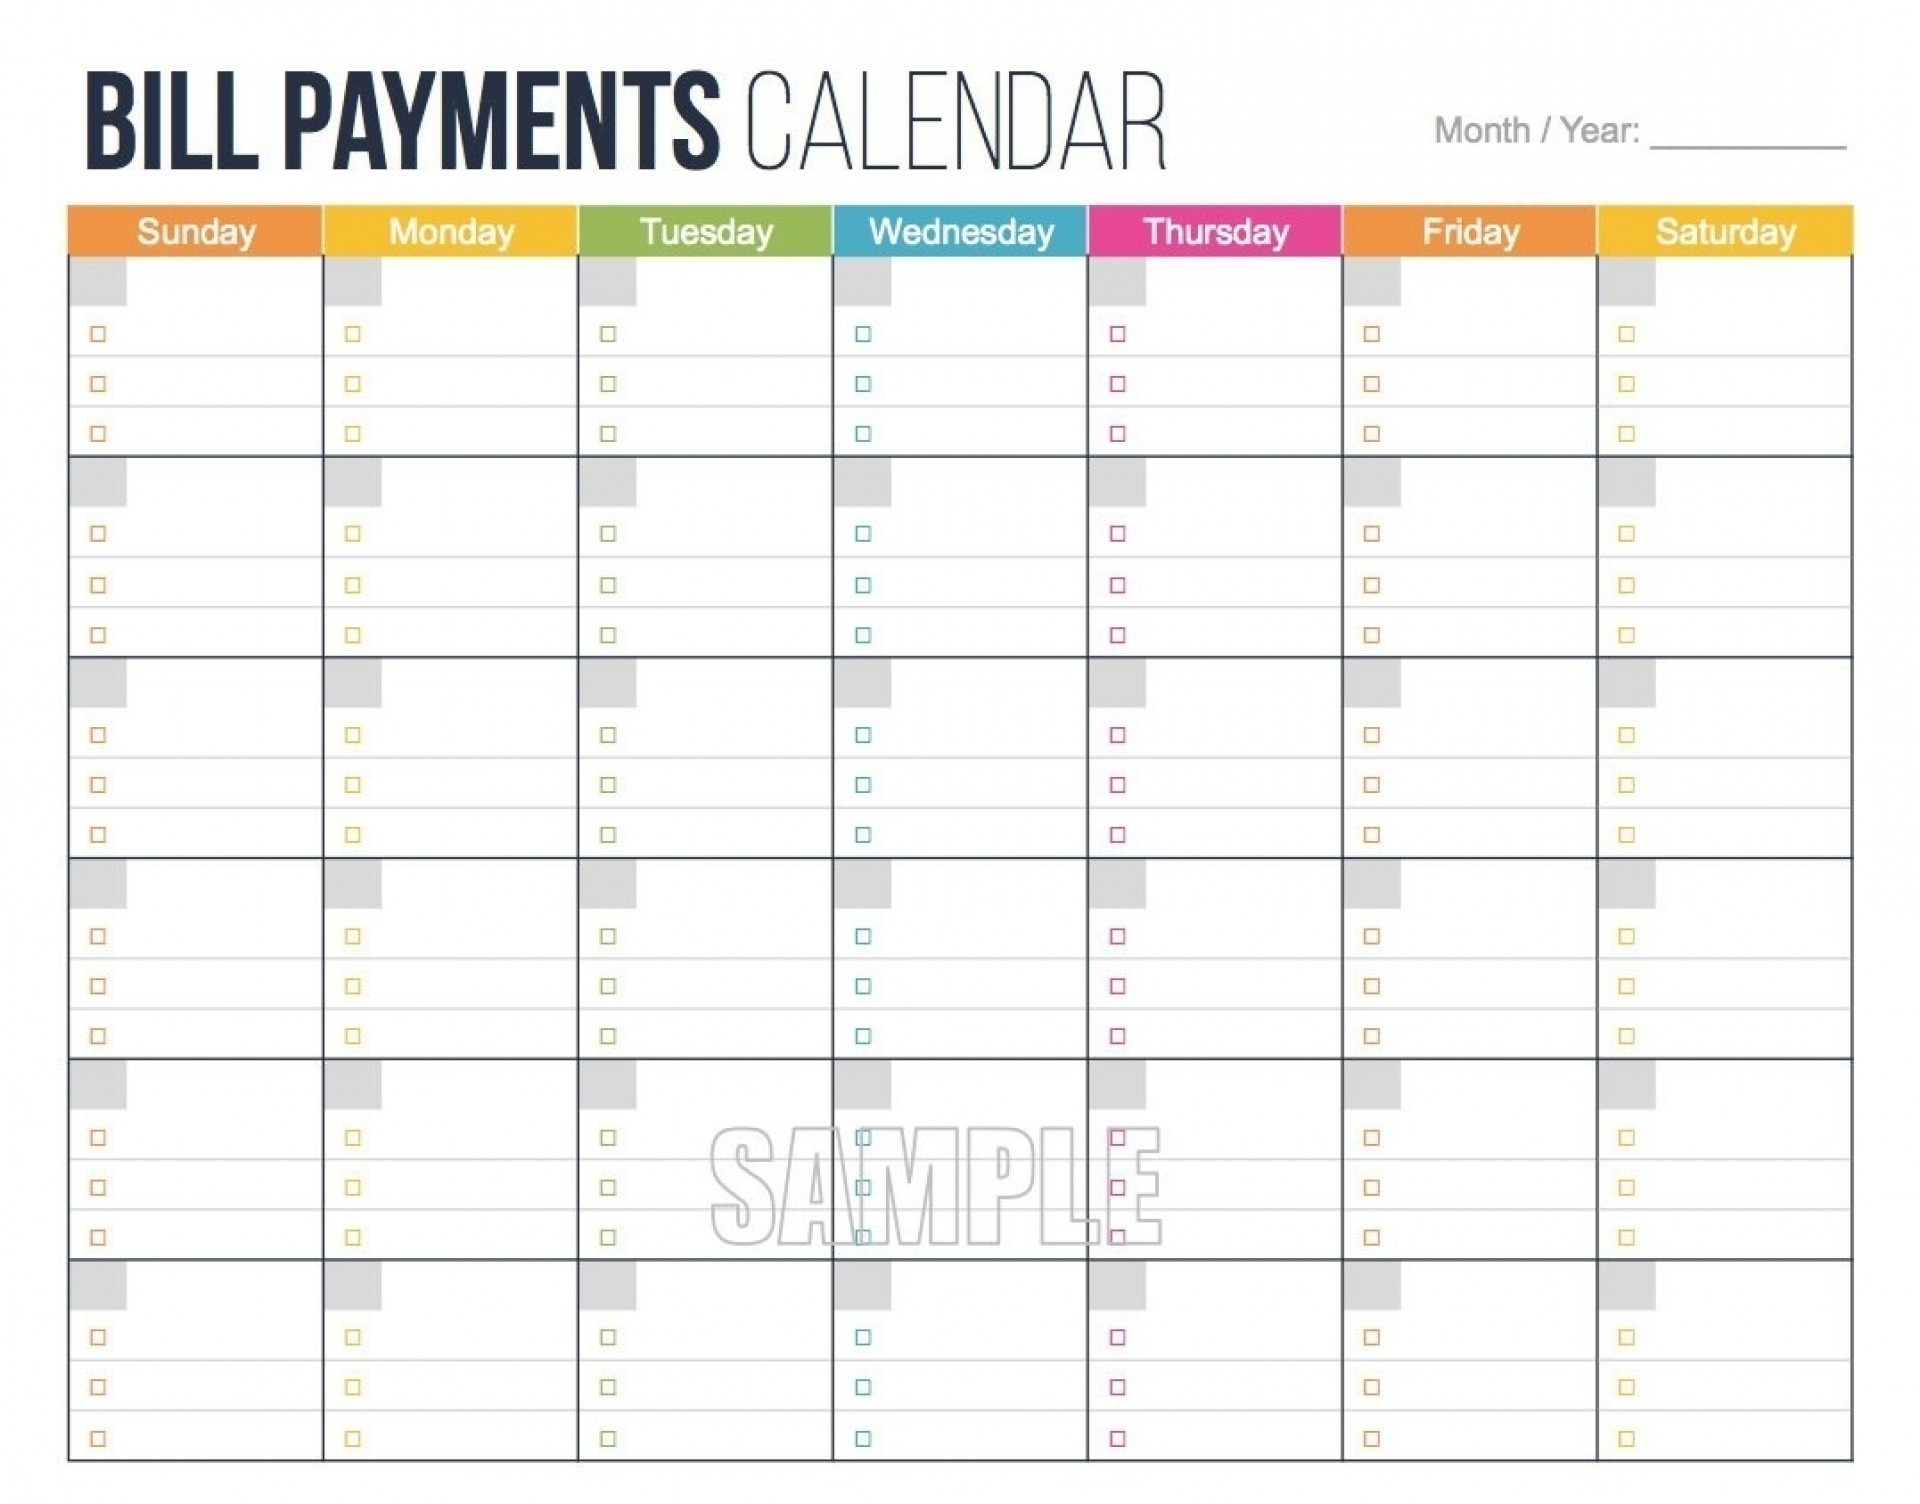 002 Free Printable Bill Pay Calendar Template Within Best-Monthly Bill Calendar Printable